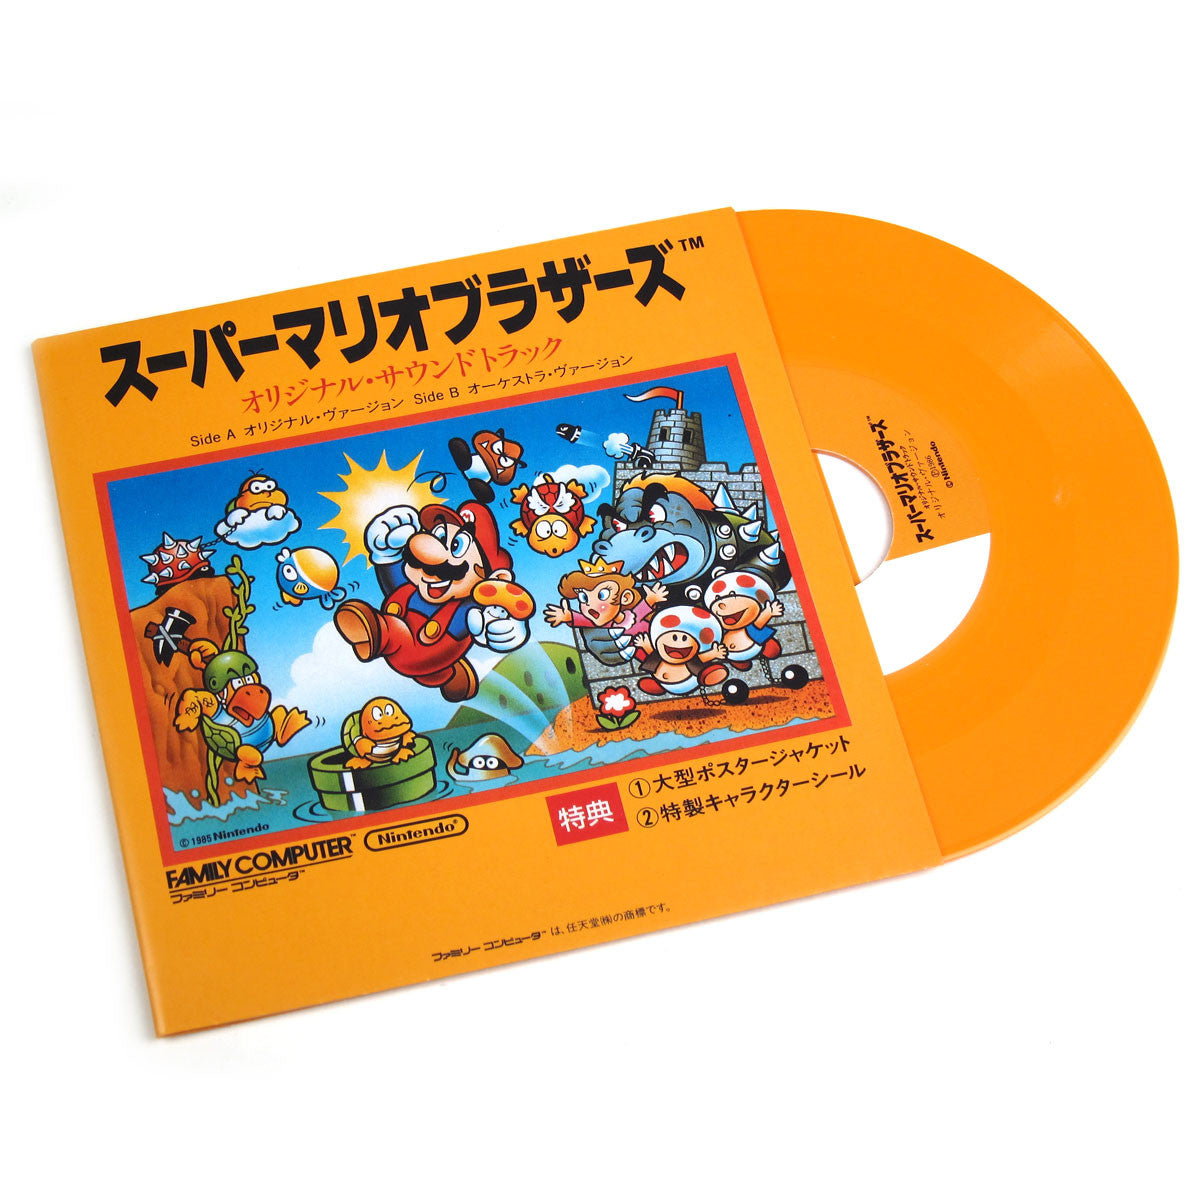 Koji Kondo: Super Mario Original Video Soundtrack (Colored Vinyl) Vinyl 7""